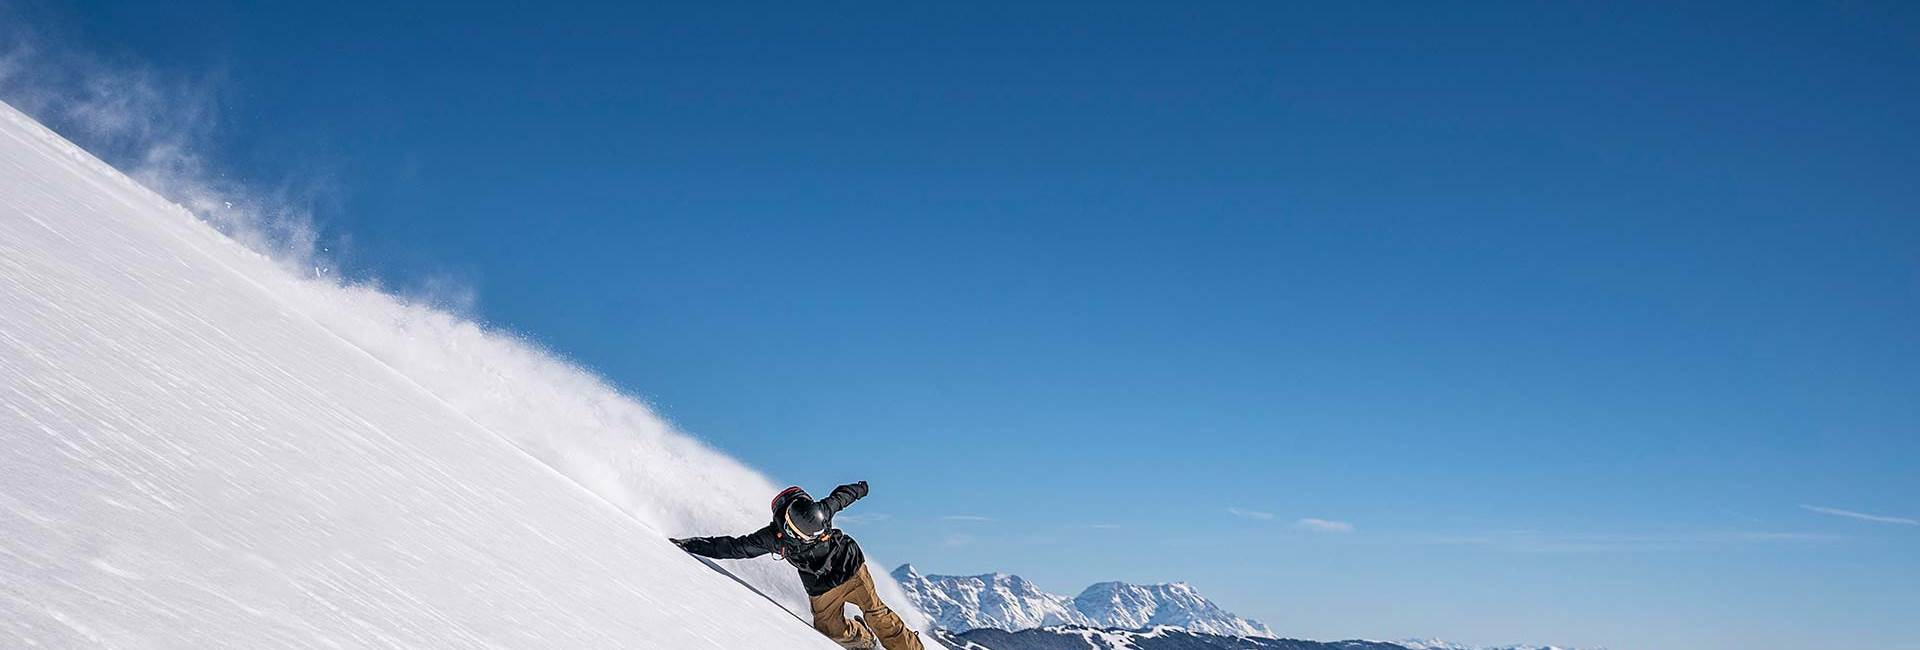 Snowboarder in the powder snow